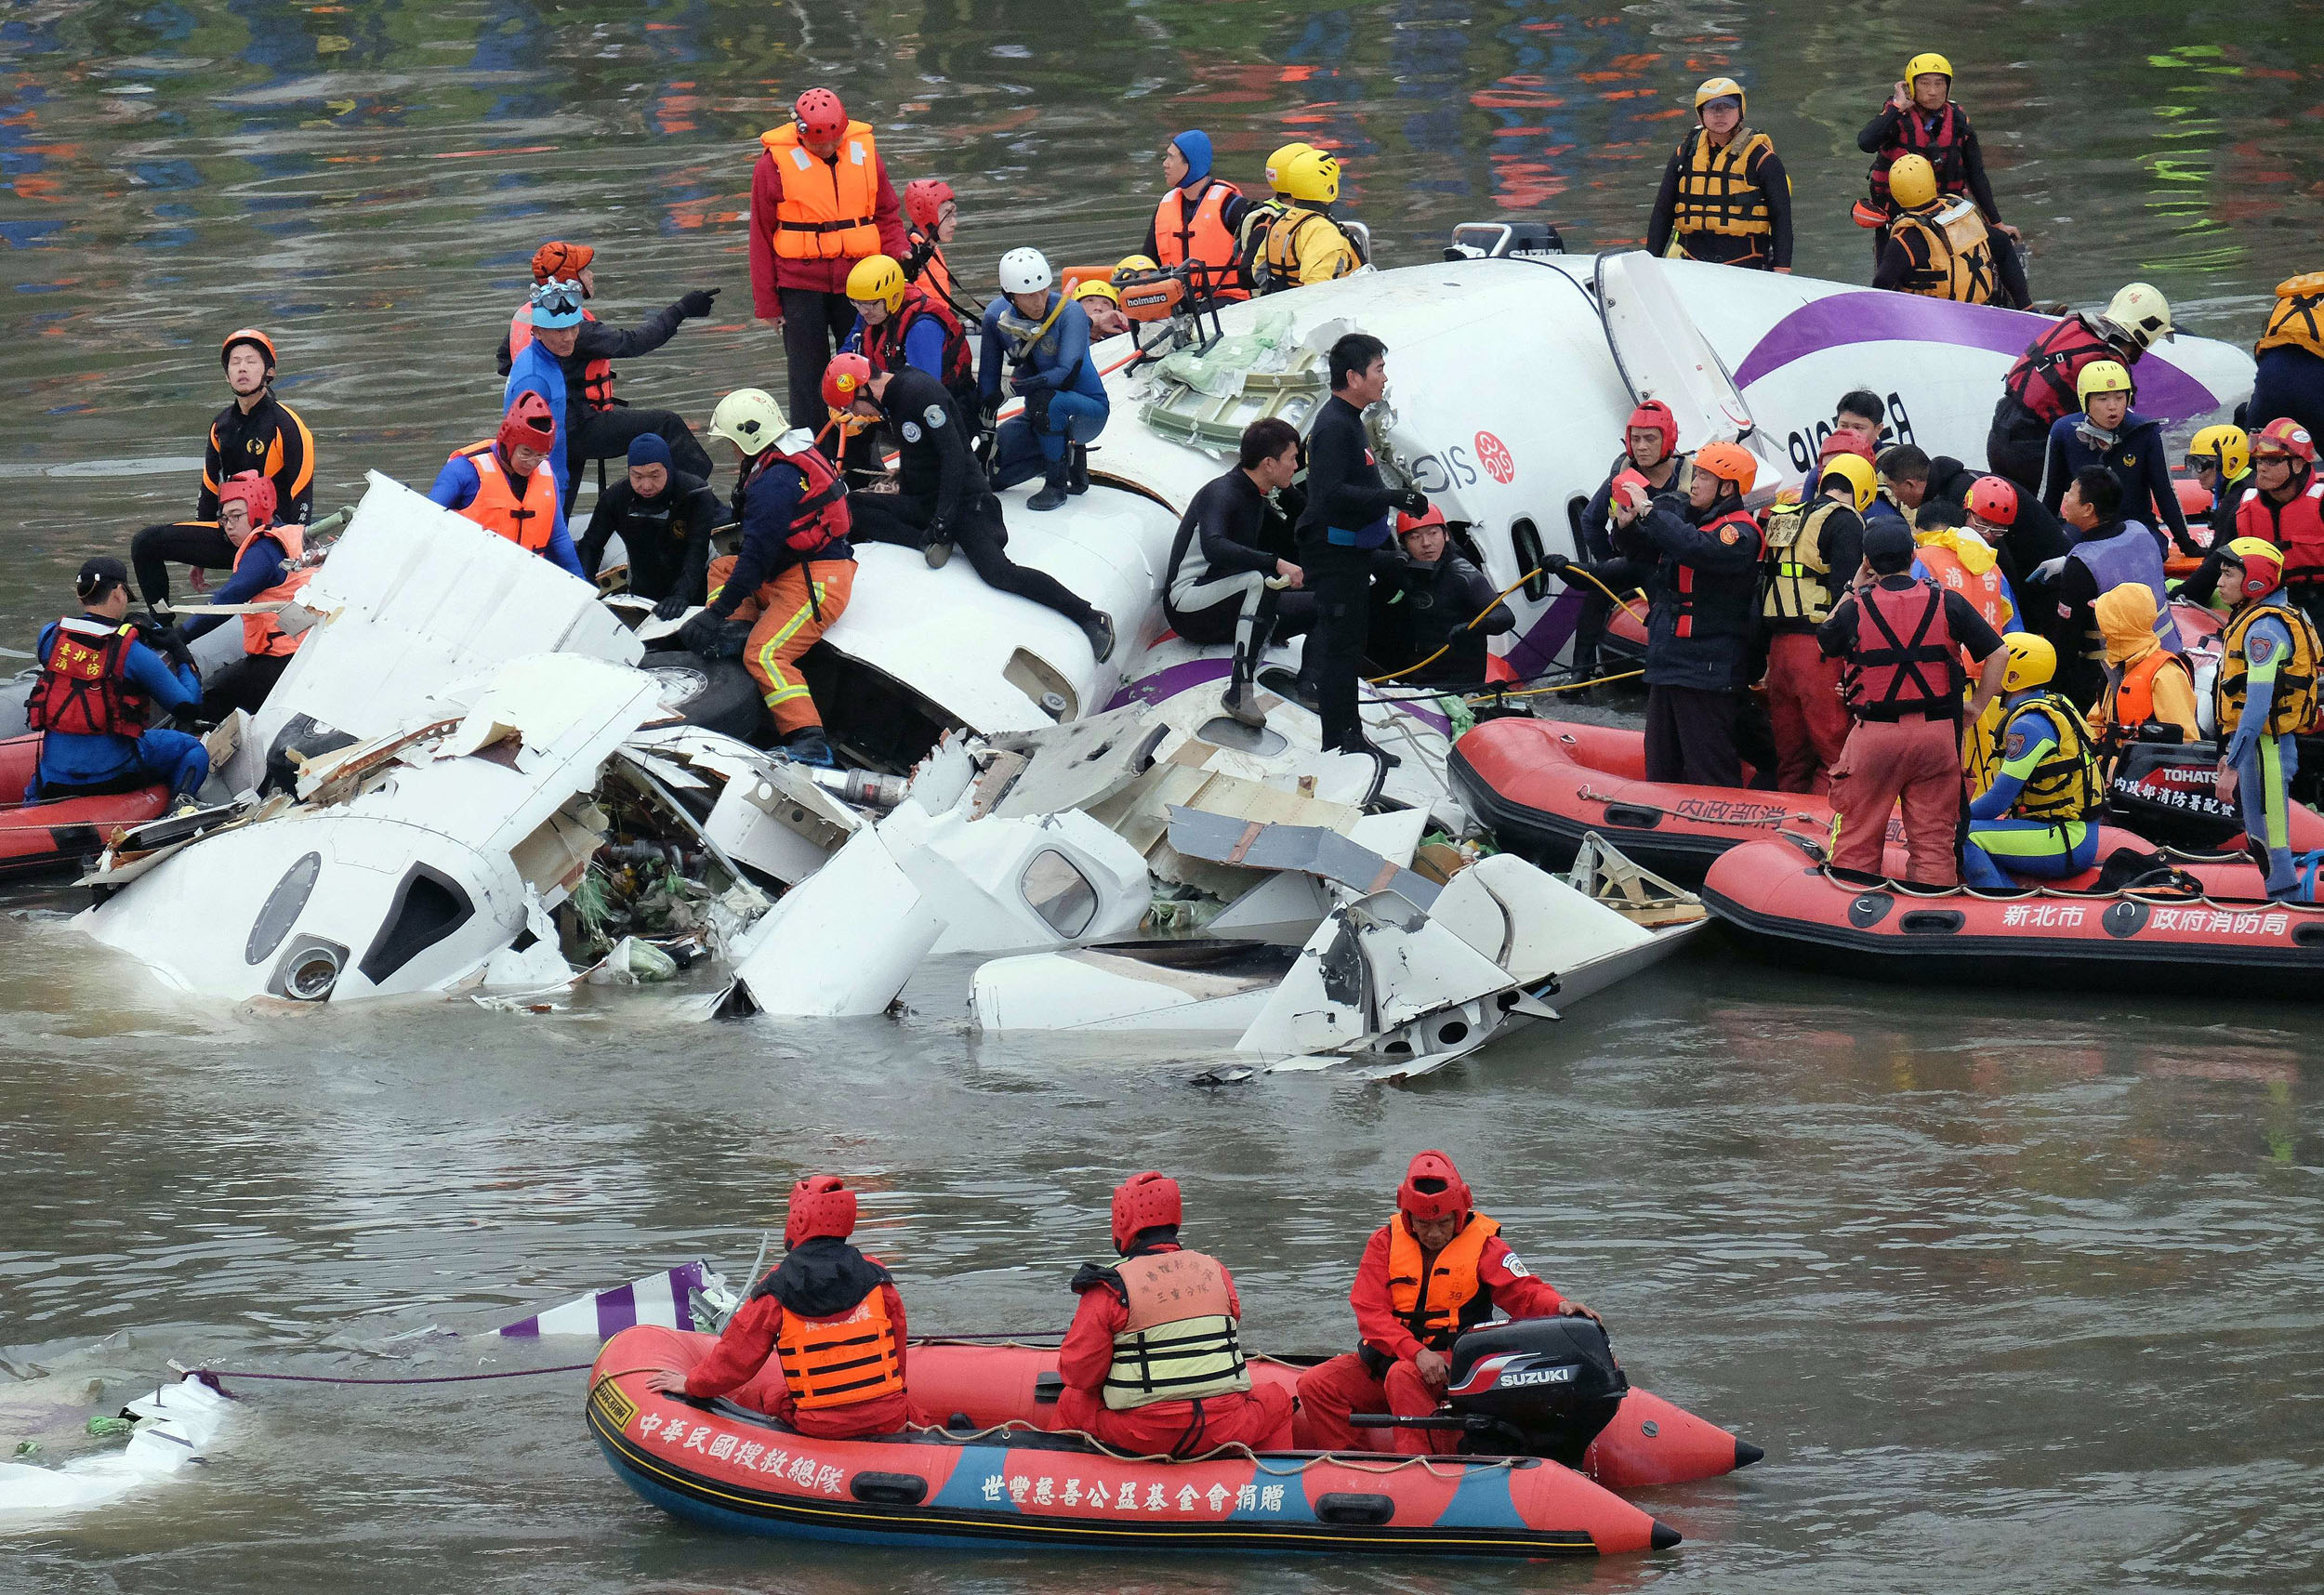 Rescue personnel search for passengers from the wreckage of a TransAsia ATR 72-600 turboprop plane that crash-landed into the Keelung river outside Taiwan's capital Taipei in New Taipei City on Feb.  4, 2015.